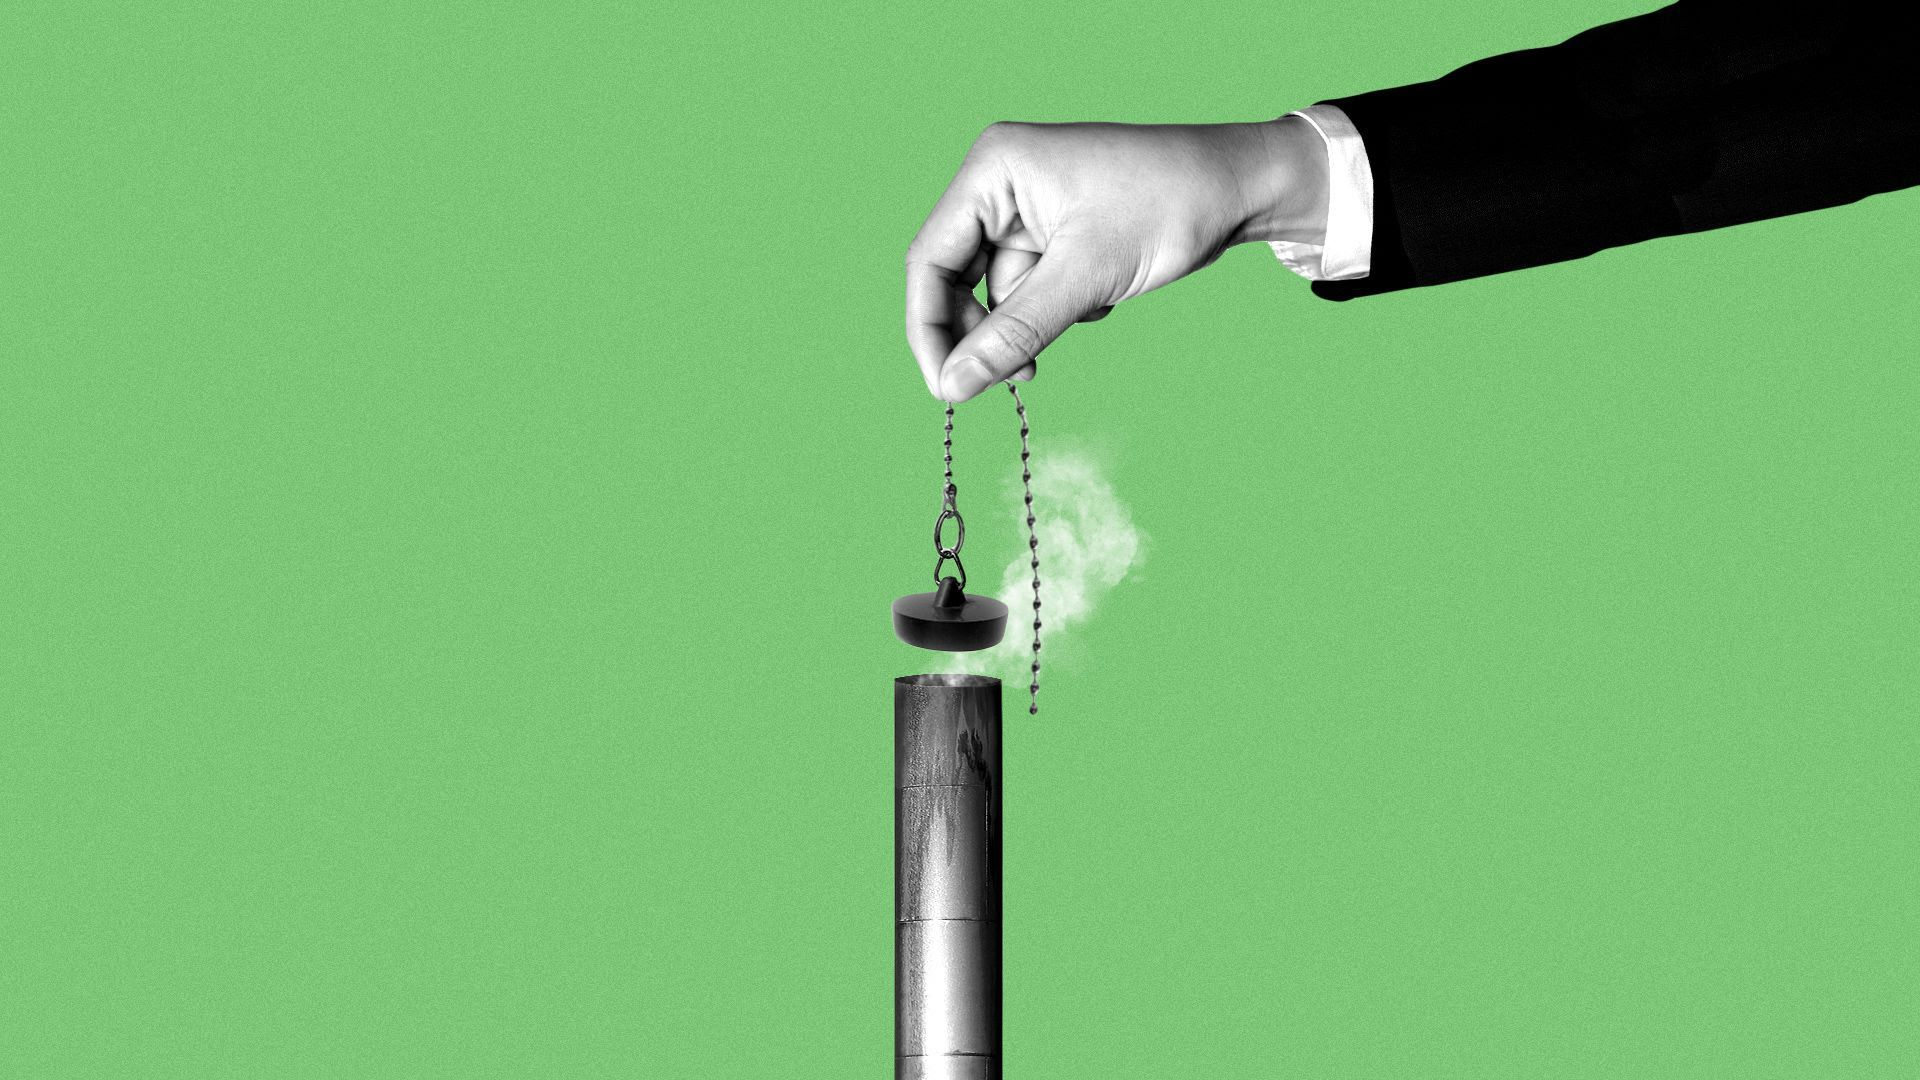 illustration of a hand plugging up a smoke stack